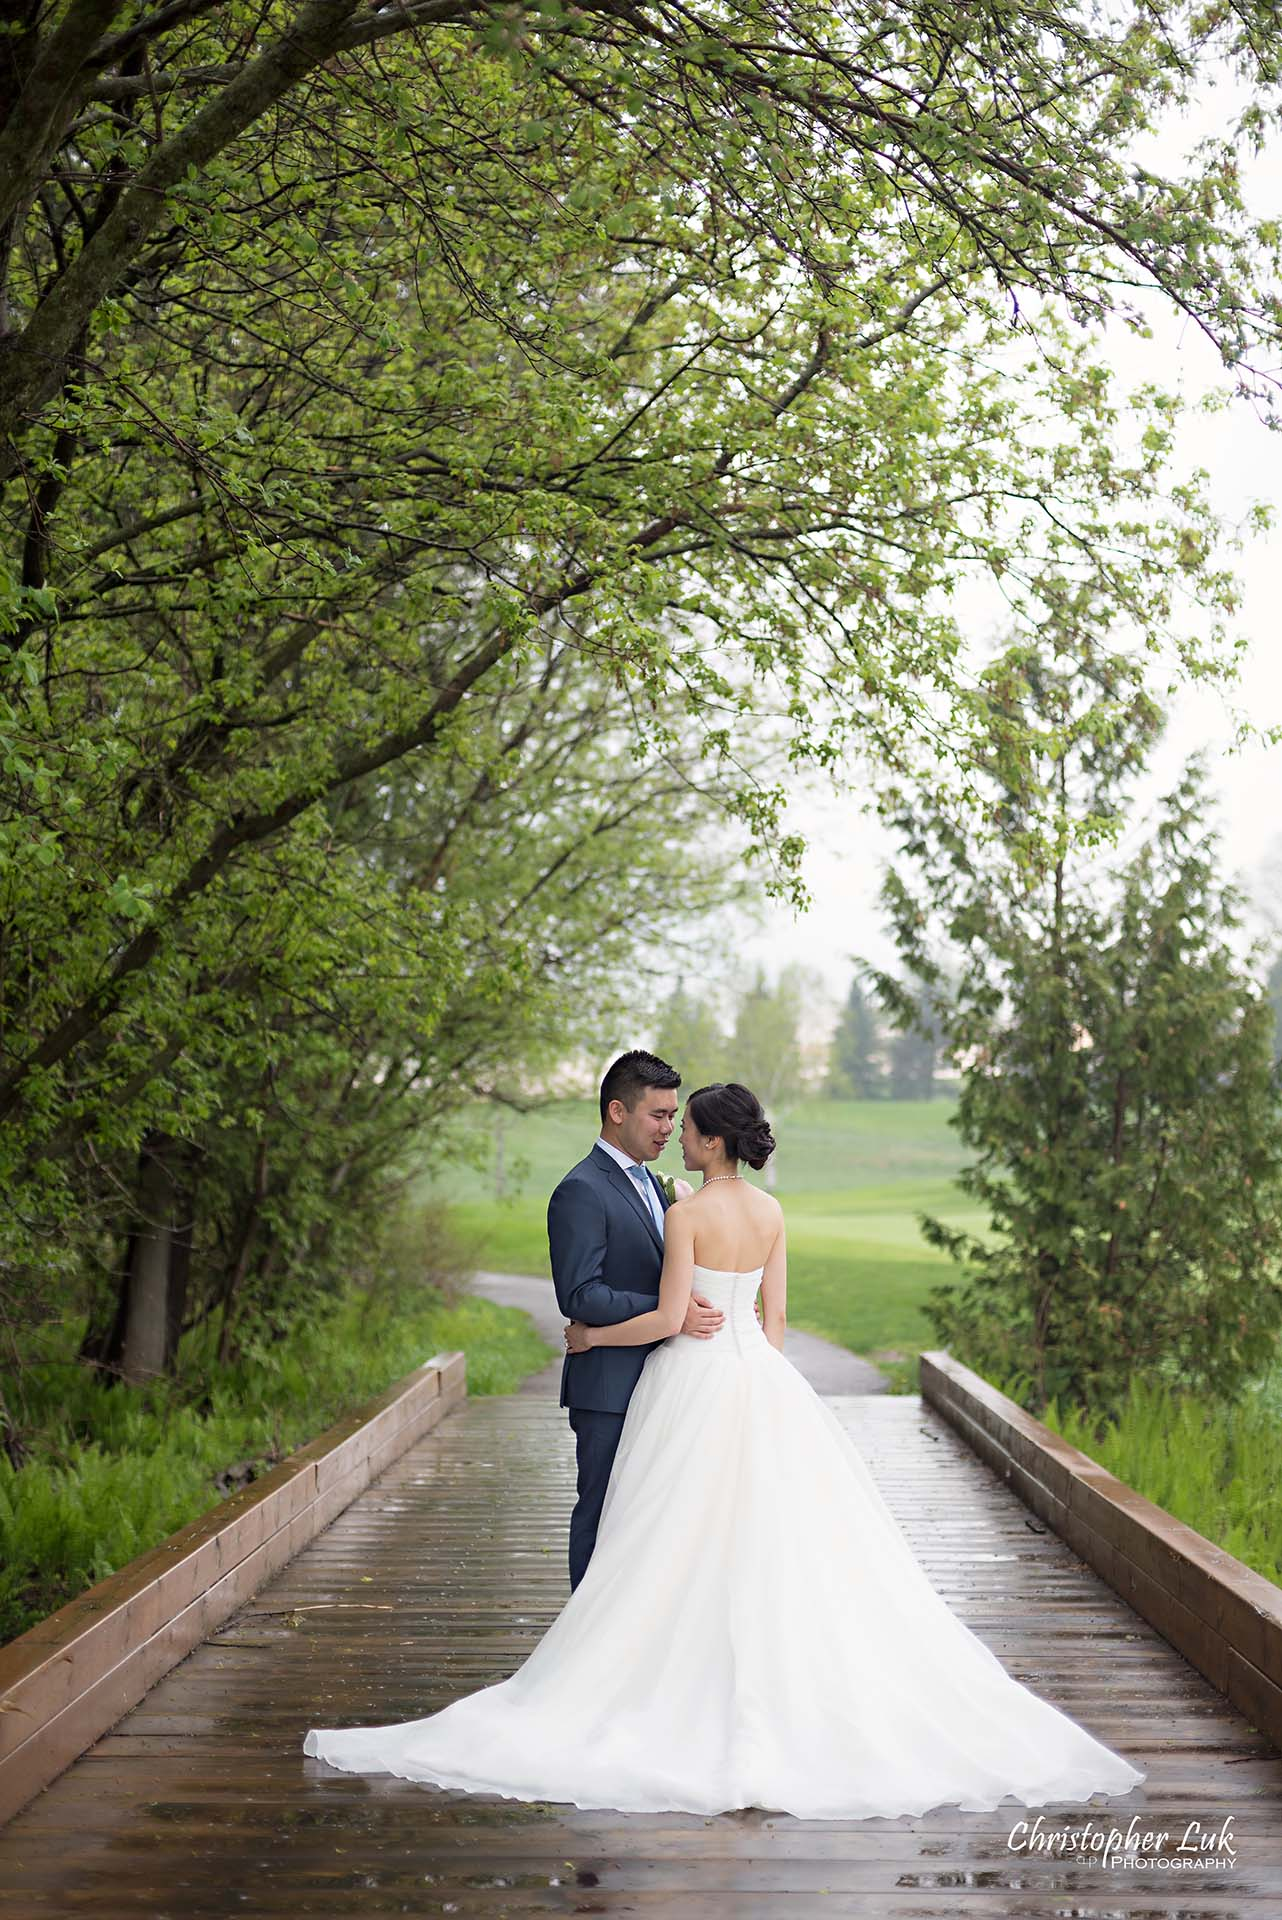 Christopher Luk Toronto Wedding Photographer Angus Glen Golf Club Markham Great Hall Dinner Reception Event Venue Green Field Sunset Bride Groom Natural Candid Photojournalistic Wooden Bridge Green Arch Trees Holding Each Other Hug Bridal Dress Gown Train Portrait